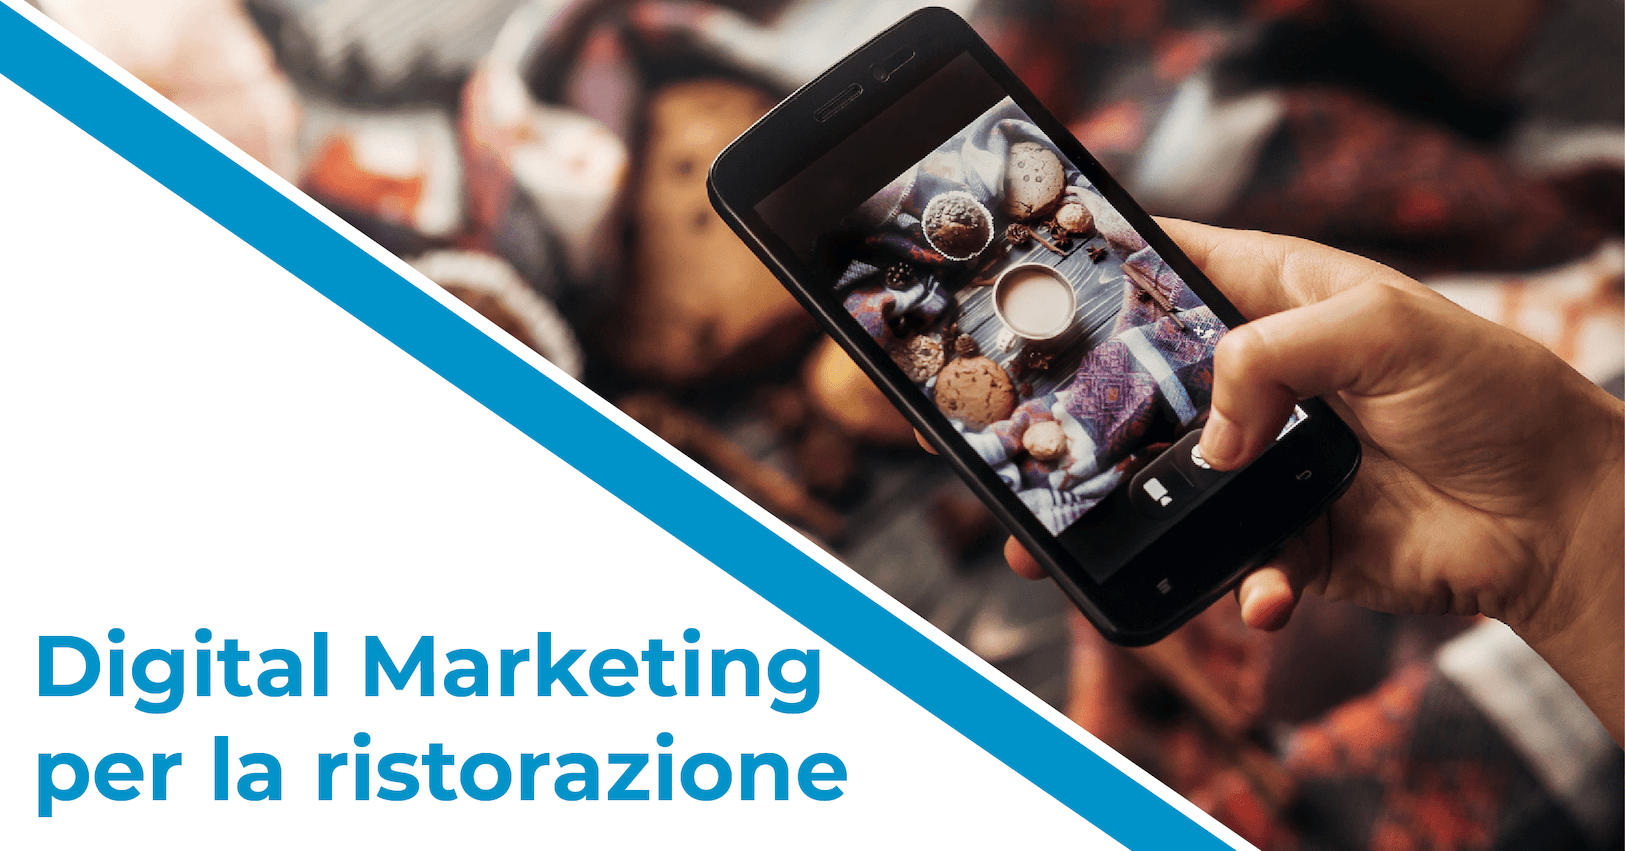 Digital marketing ristorazione